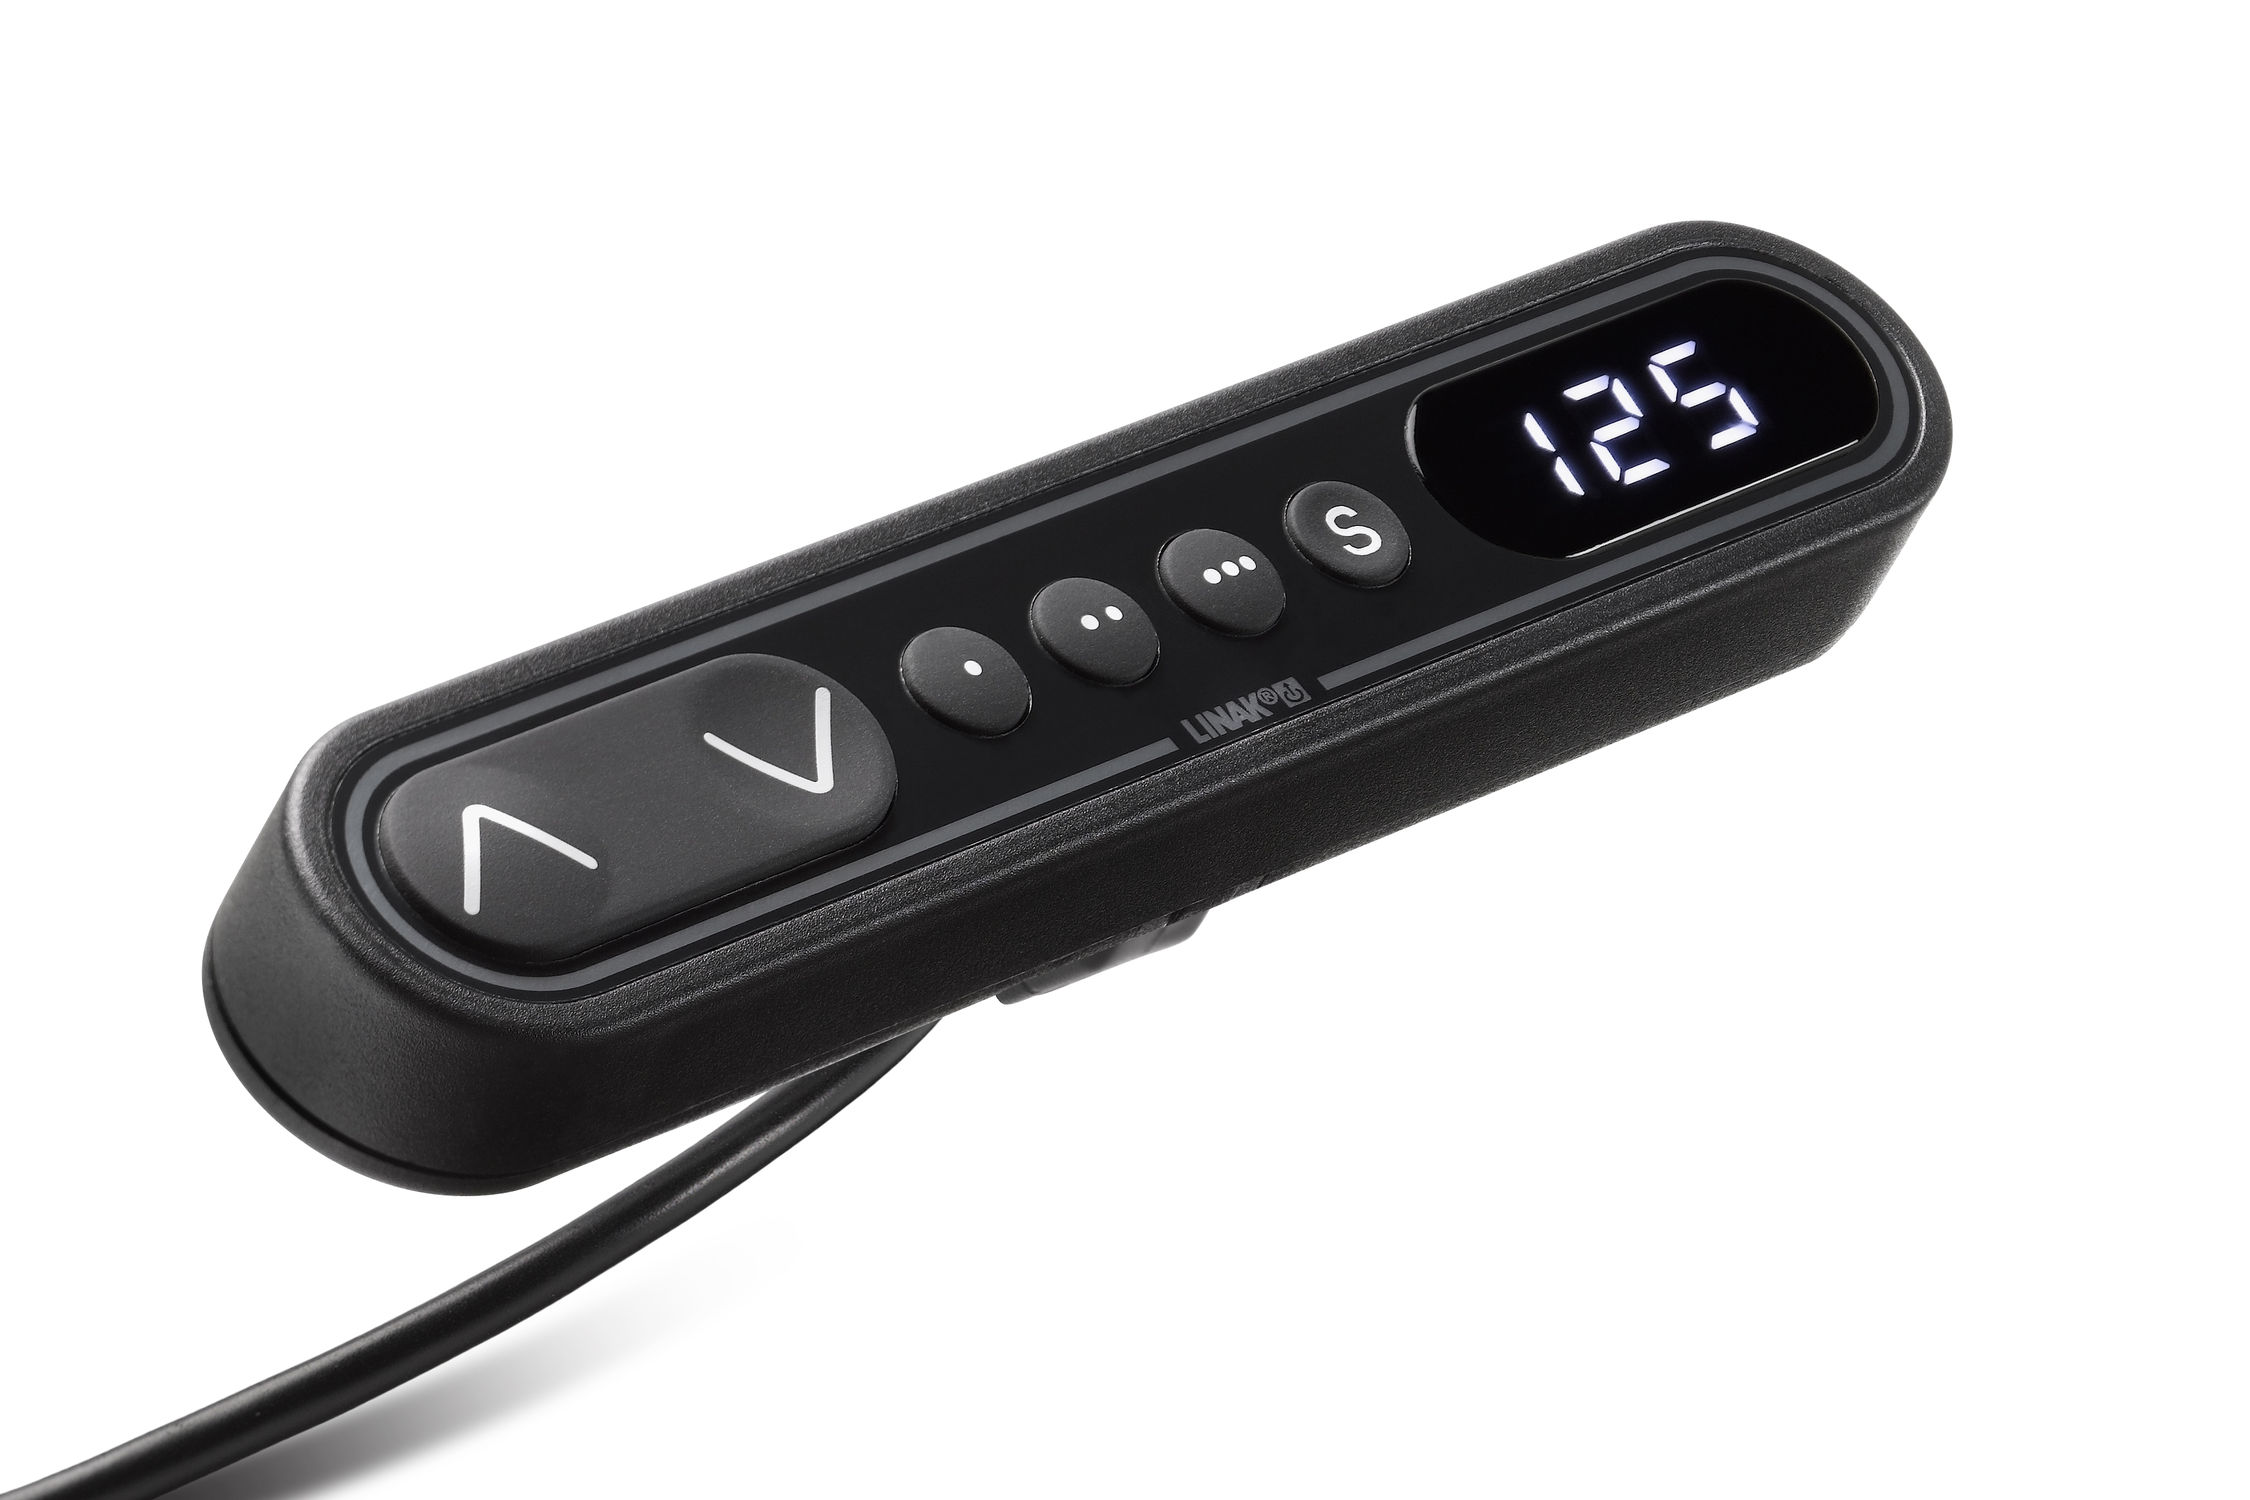 Corded remote control / with buttons / with integrated display / for